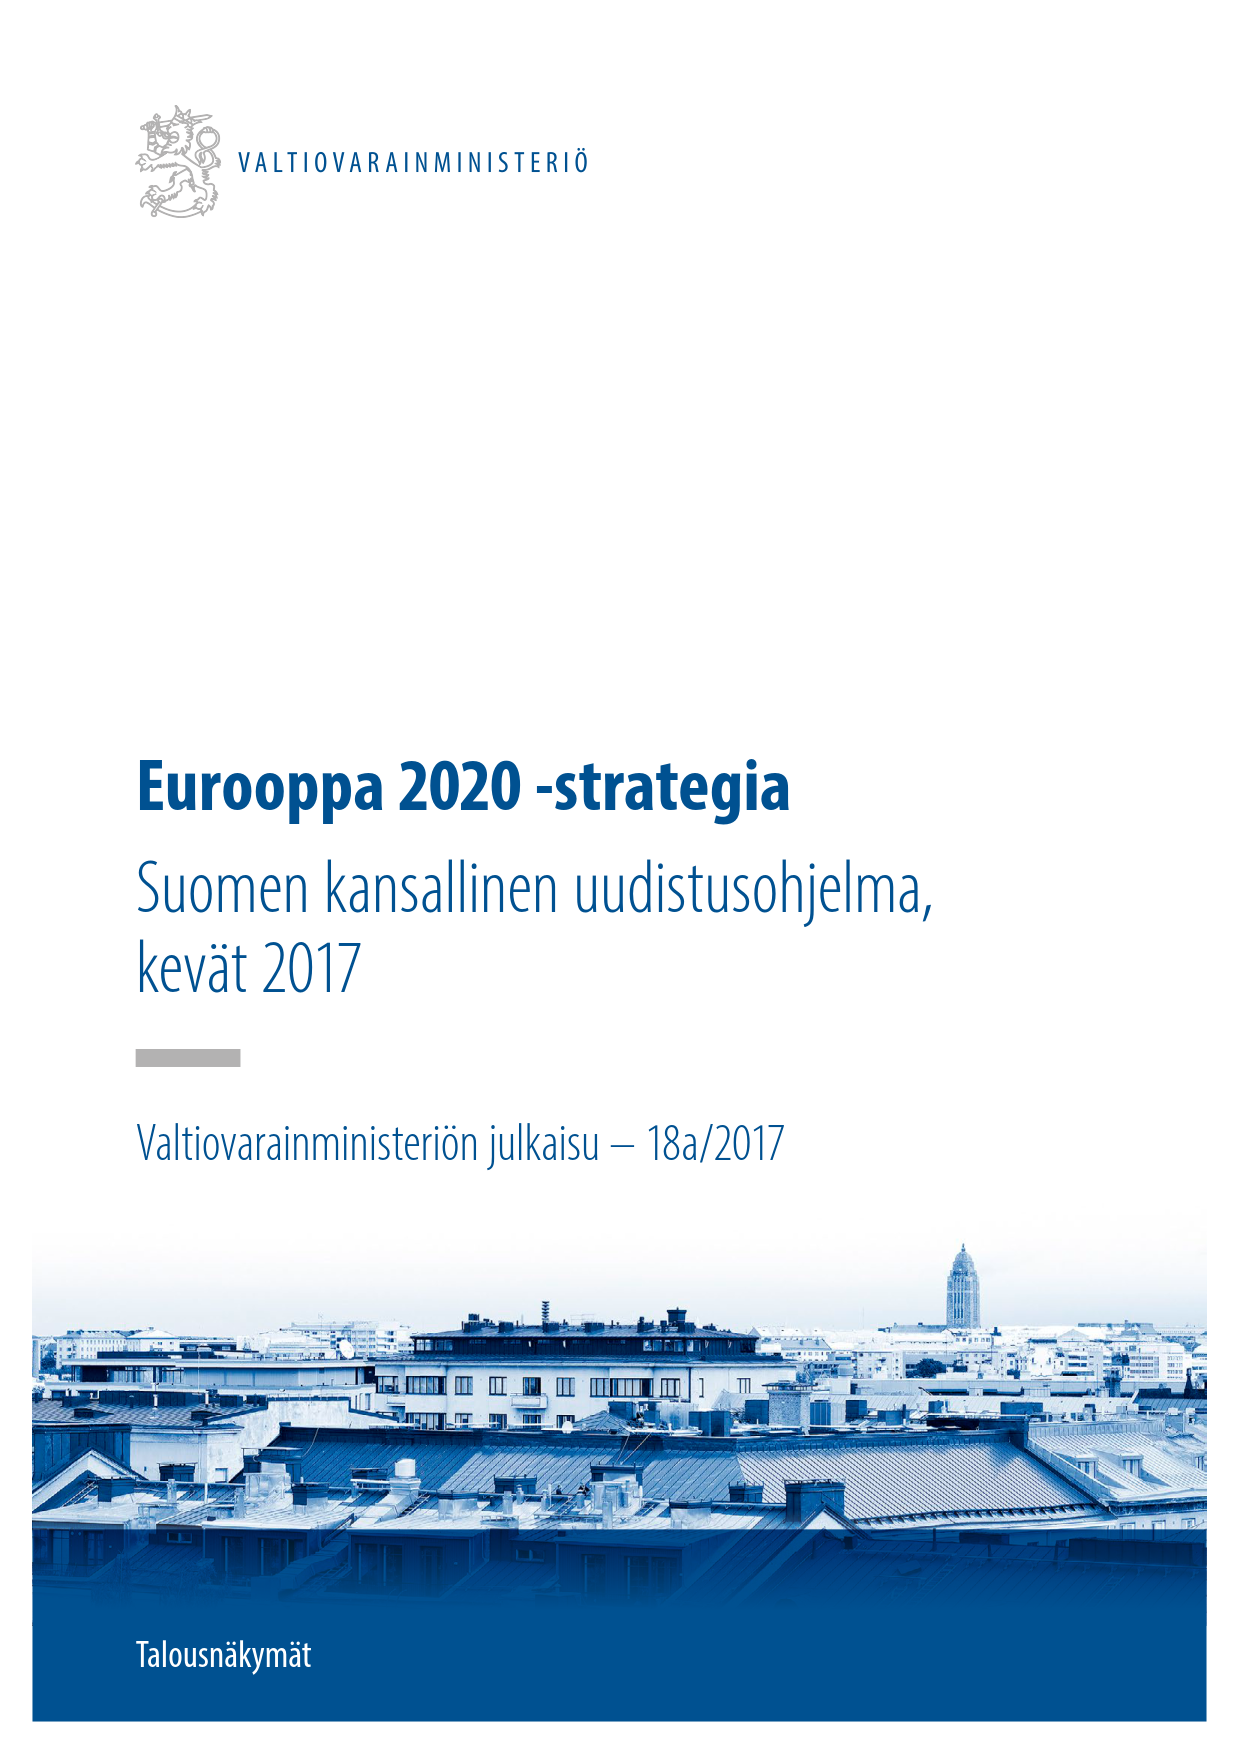 Eurooppa 2020 -strategia